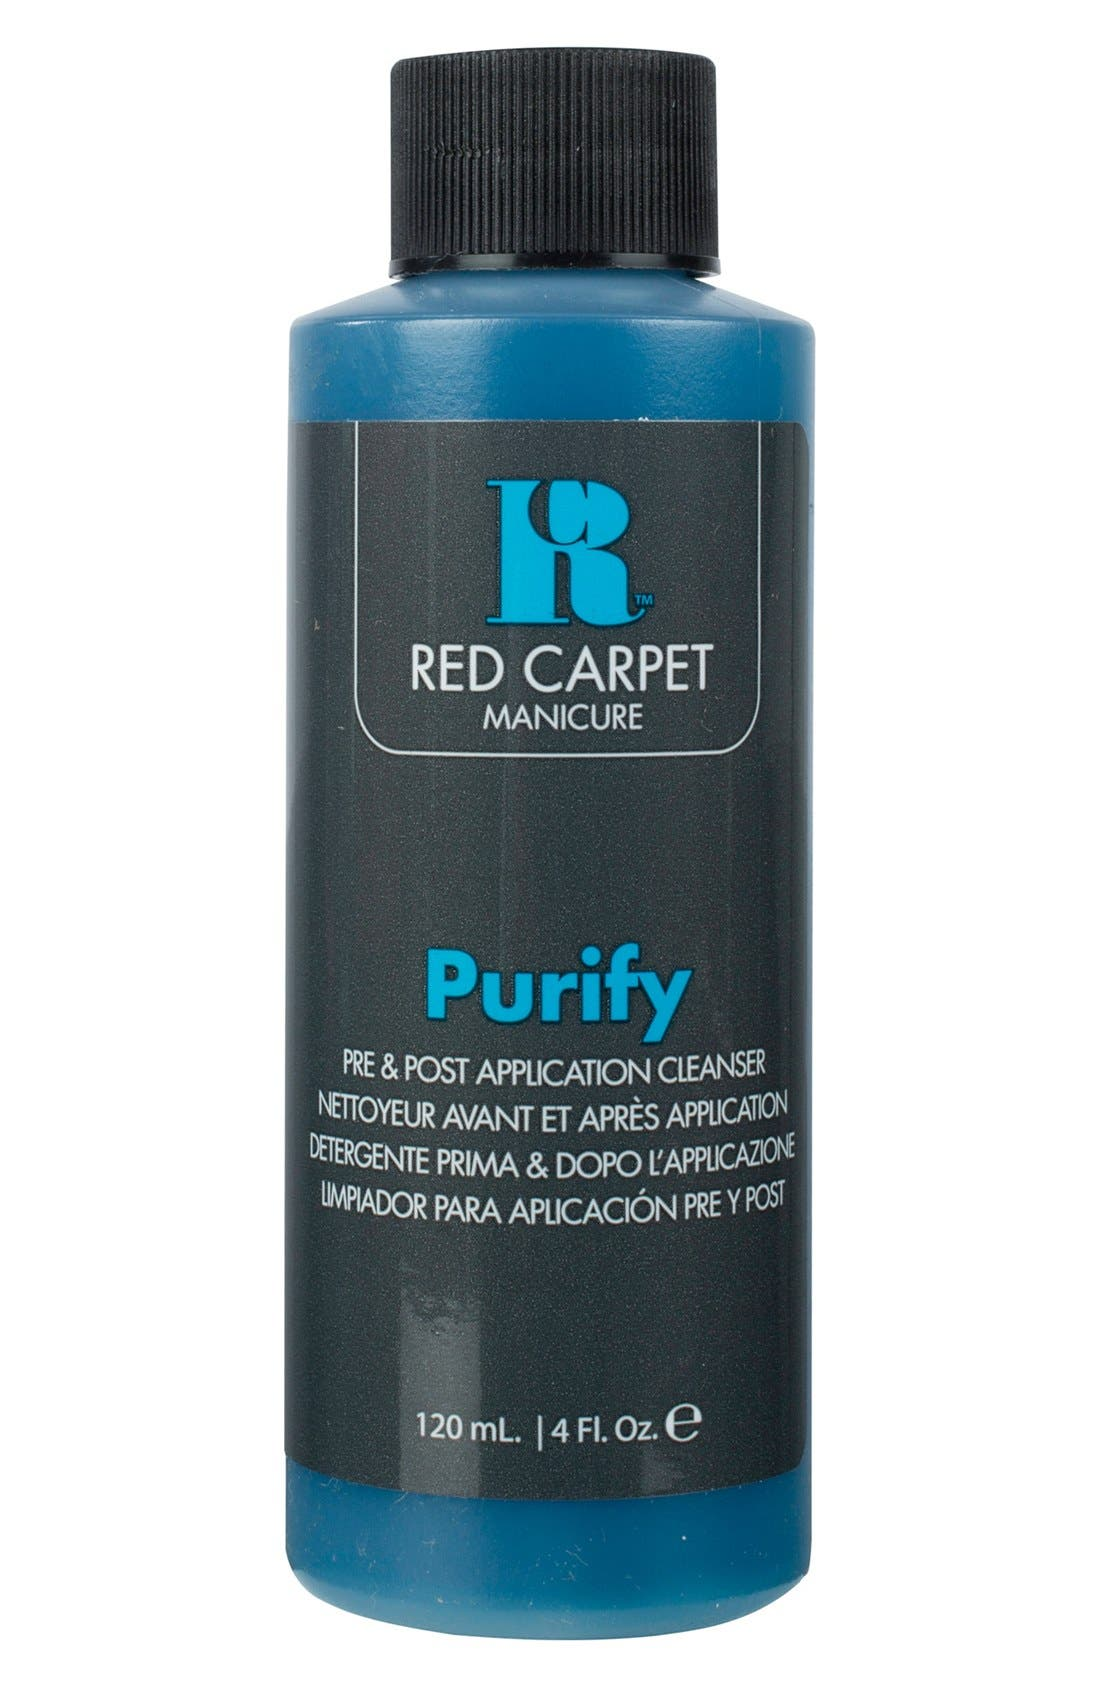 Red Carpet Manicure 'Purify' Pre & Post Application Cleanser